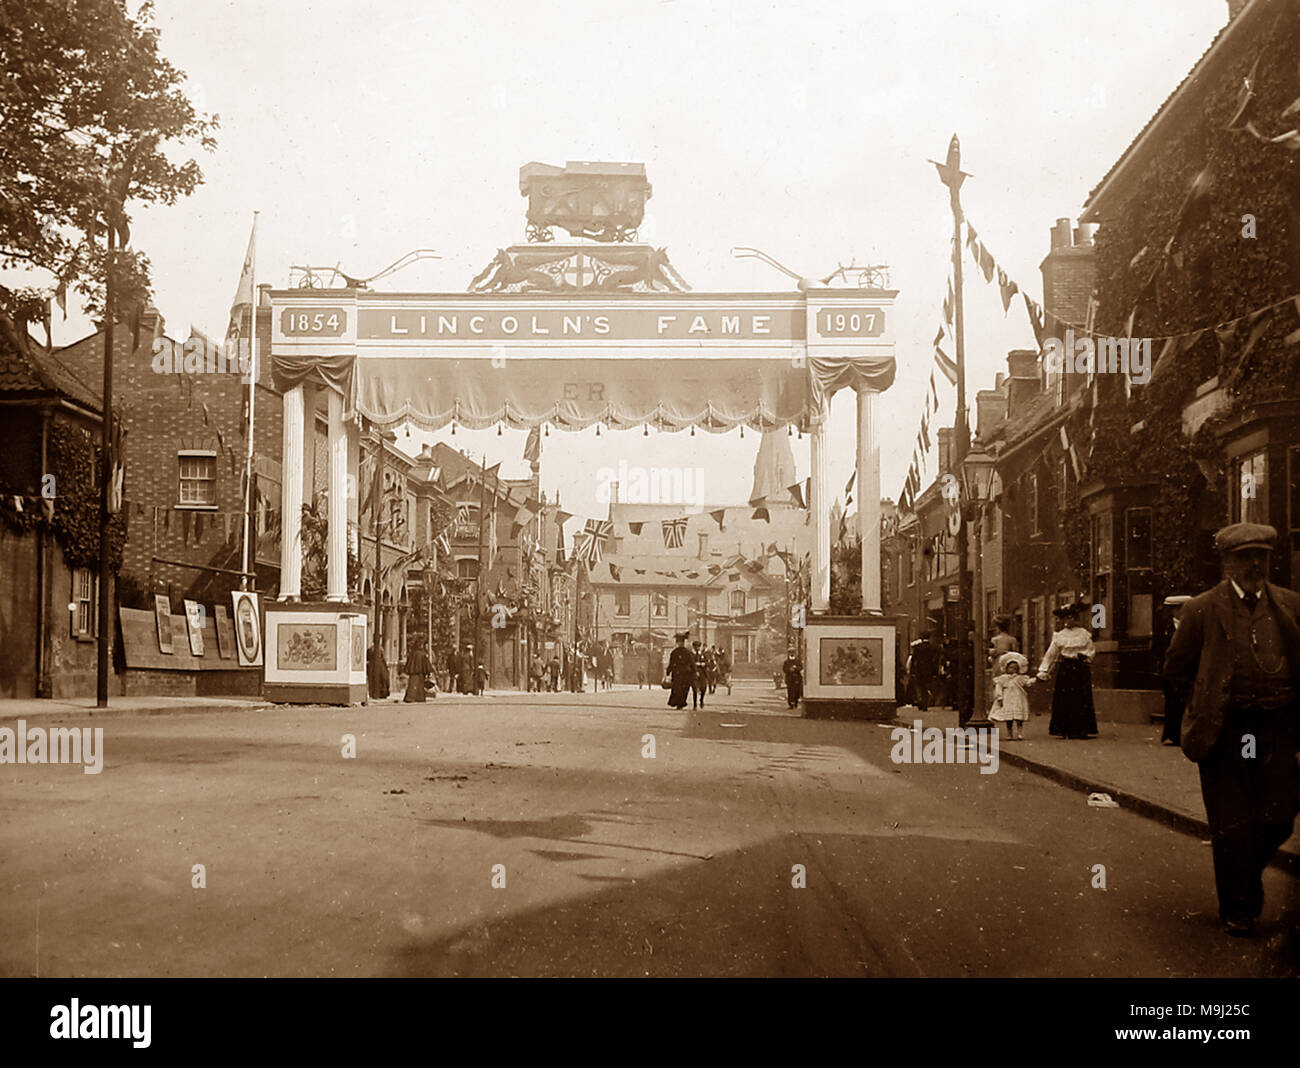 Lincoln Arch in 1907, possibly in celebration of a visit by King Edward VII - Stock Image